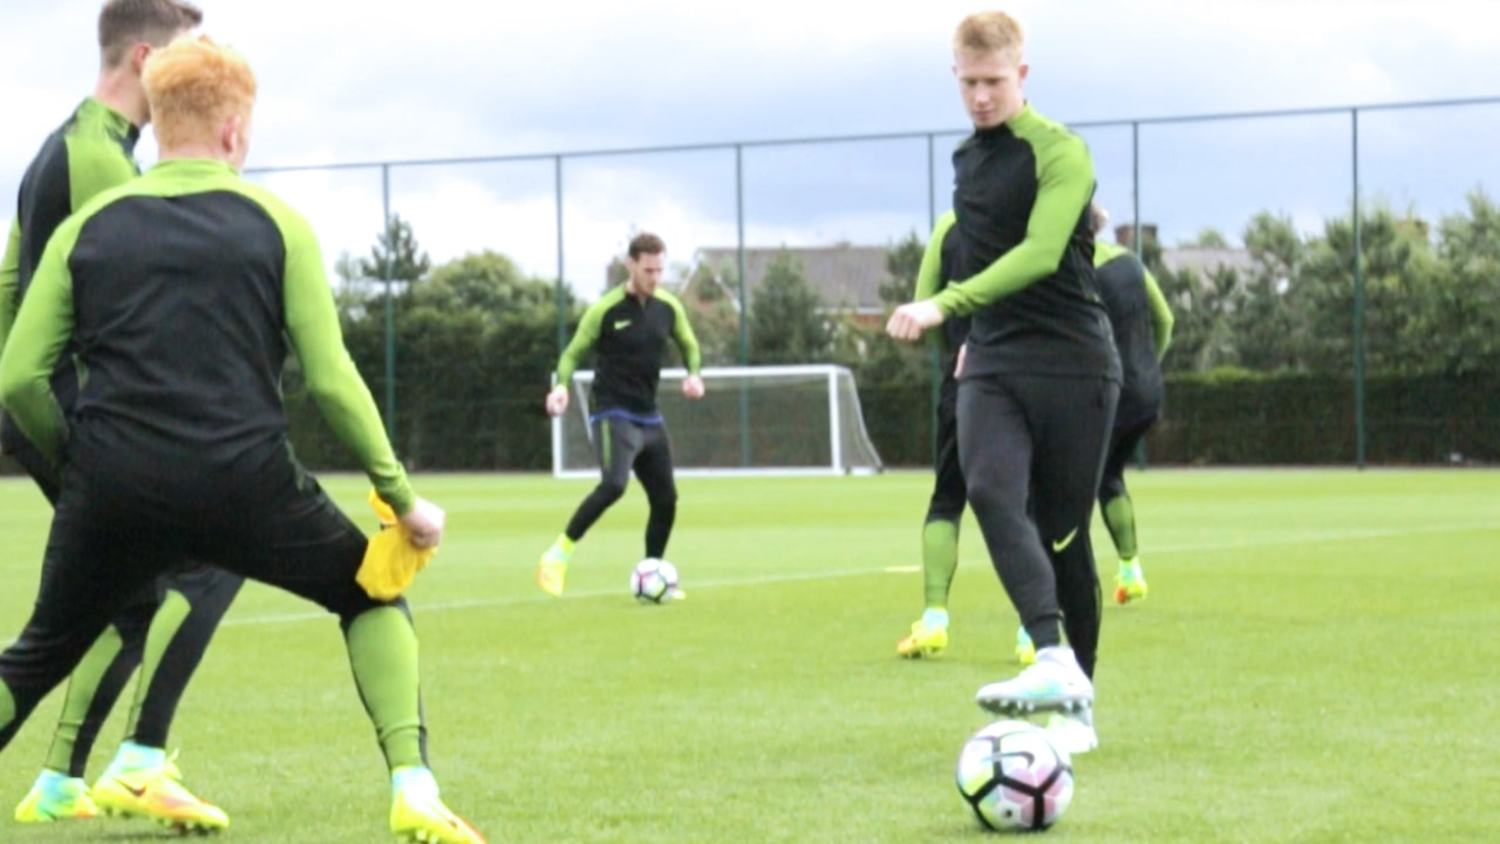 Pre-Season Training with Kevin De Bruyne on Pep, Man City & more